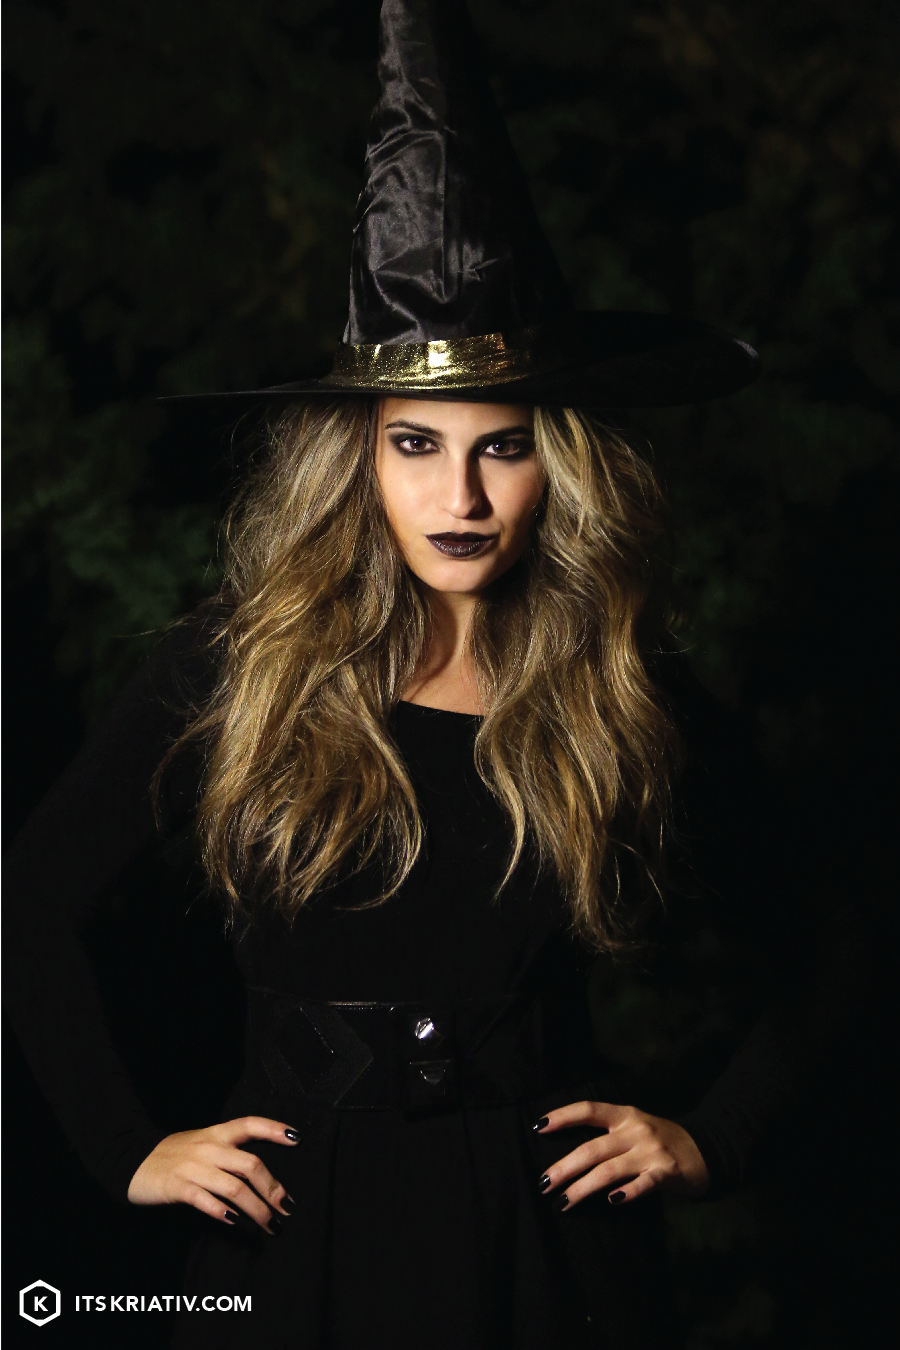 Oct_13_Fashion-Halloween-Witch-01a-01.jpg